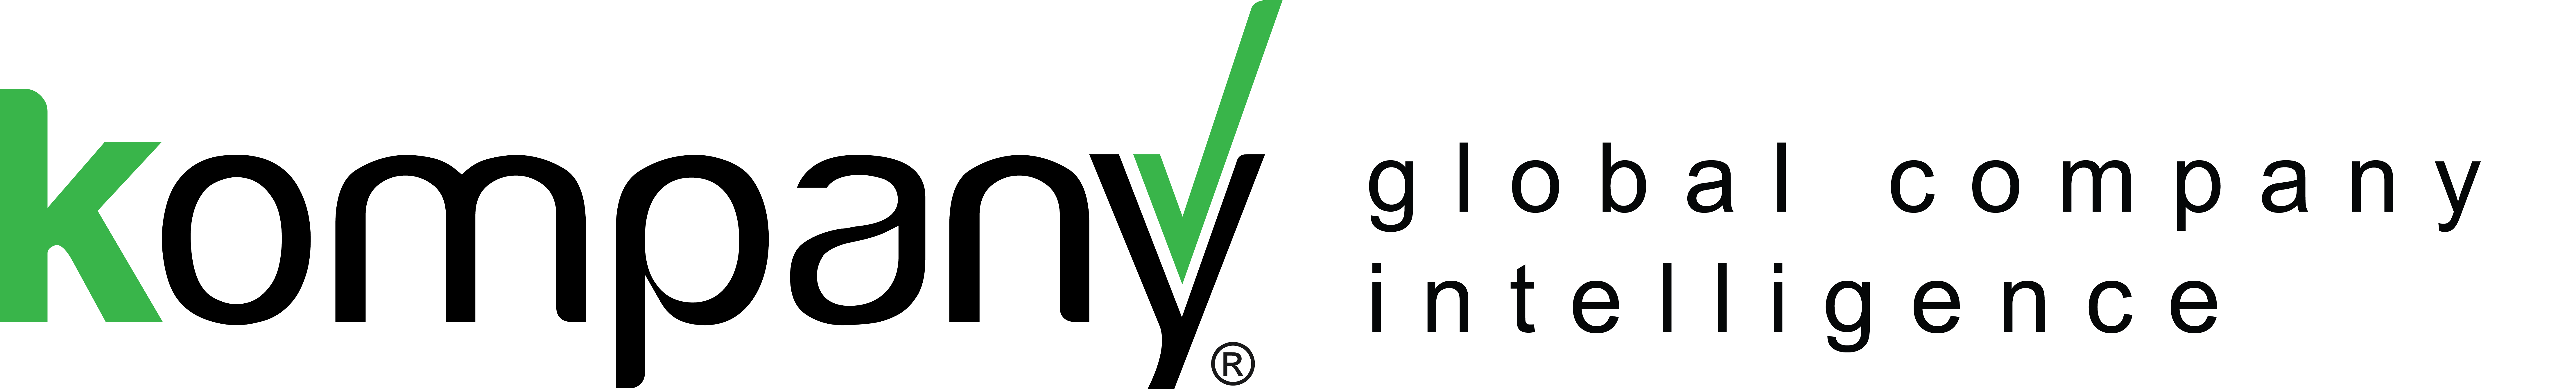 inverse_greenk_right_large.png